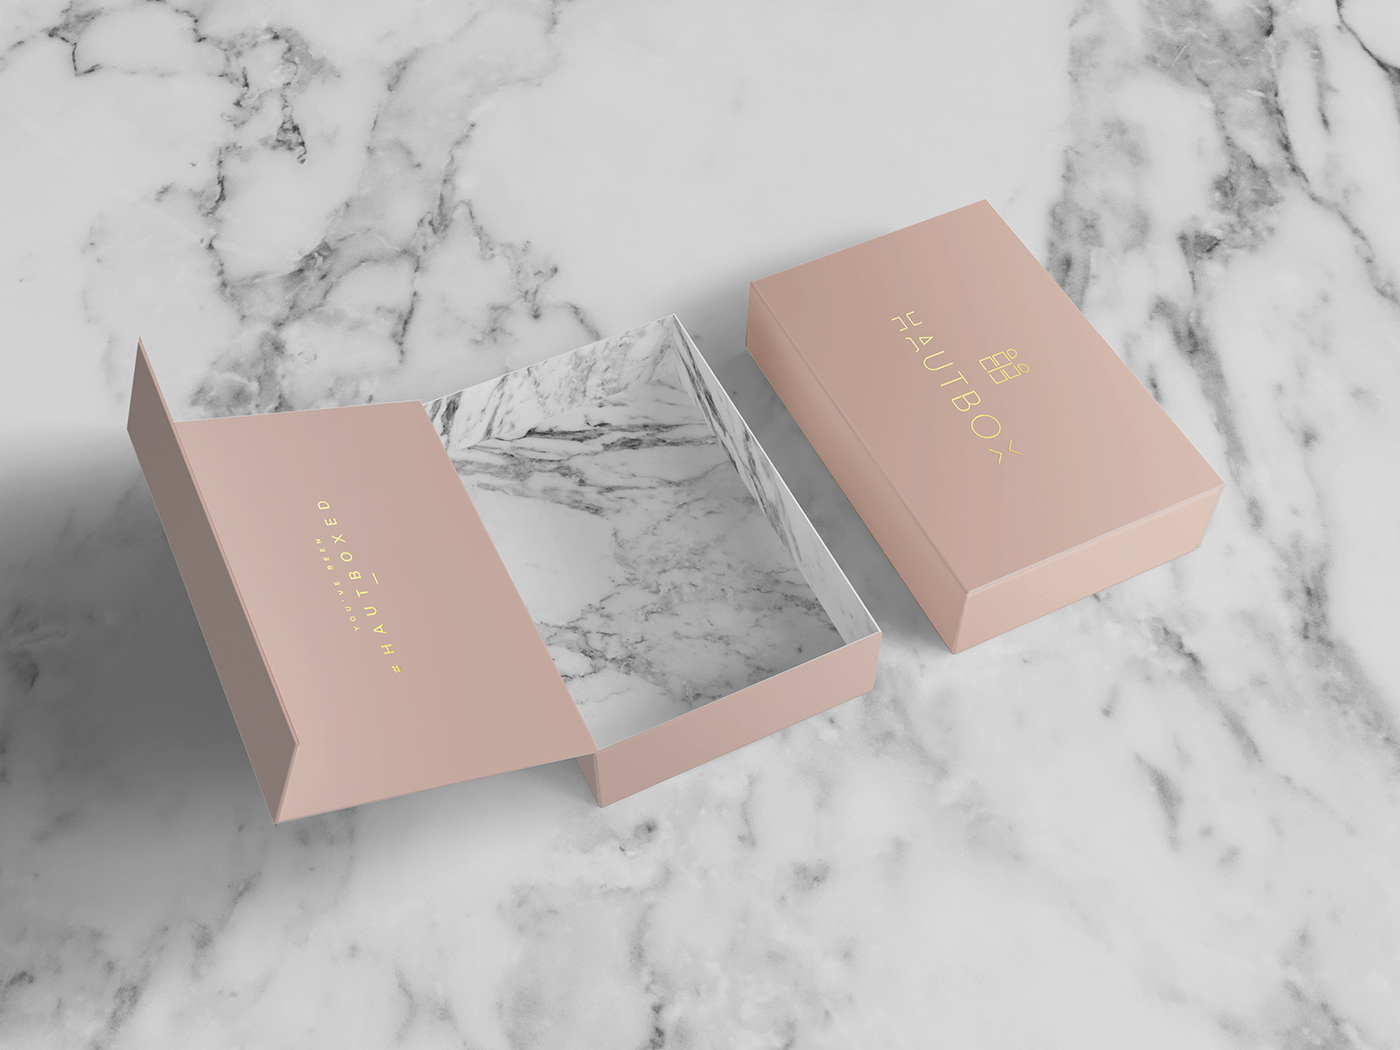 Hautbox Luxury Brand Identity Packaging Design On Behance